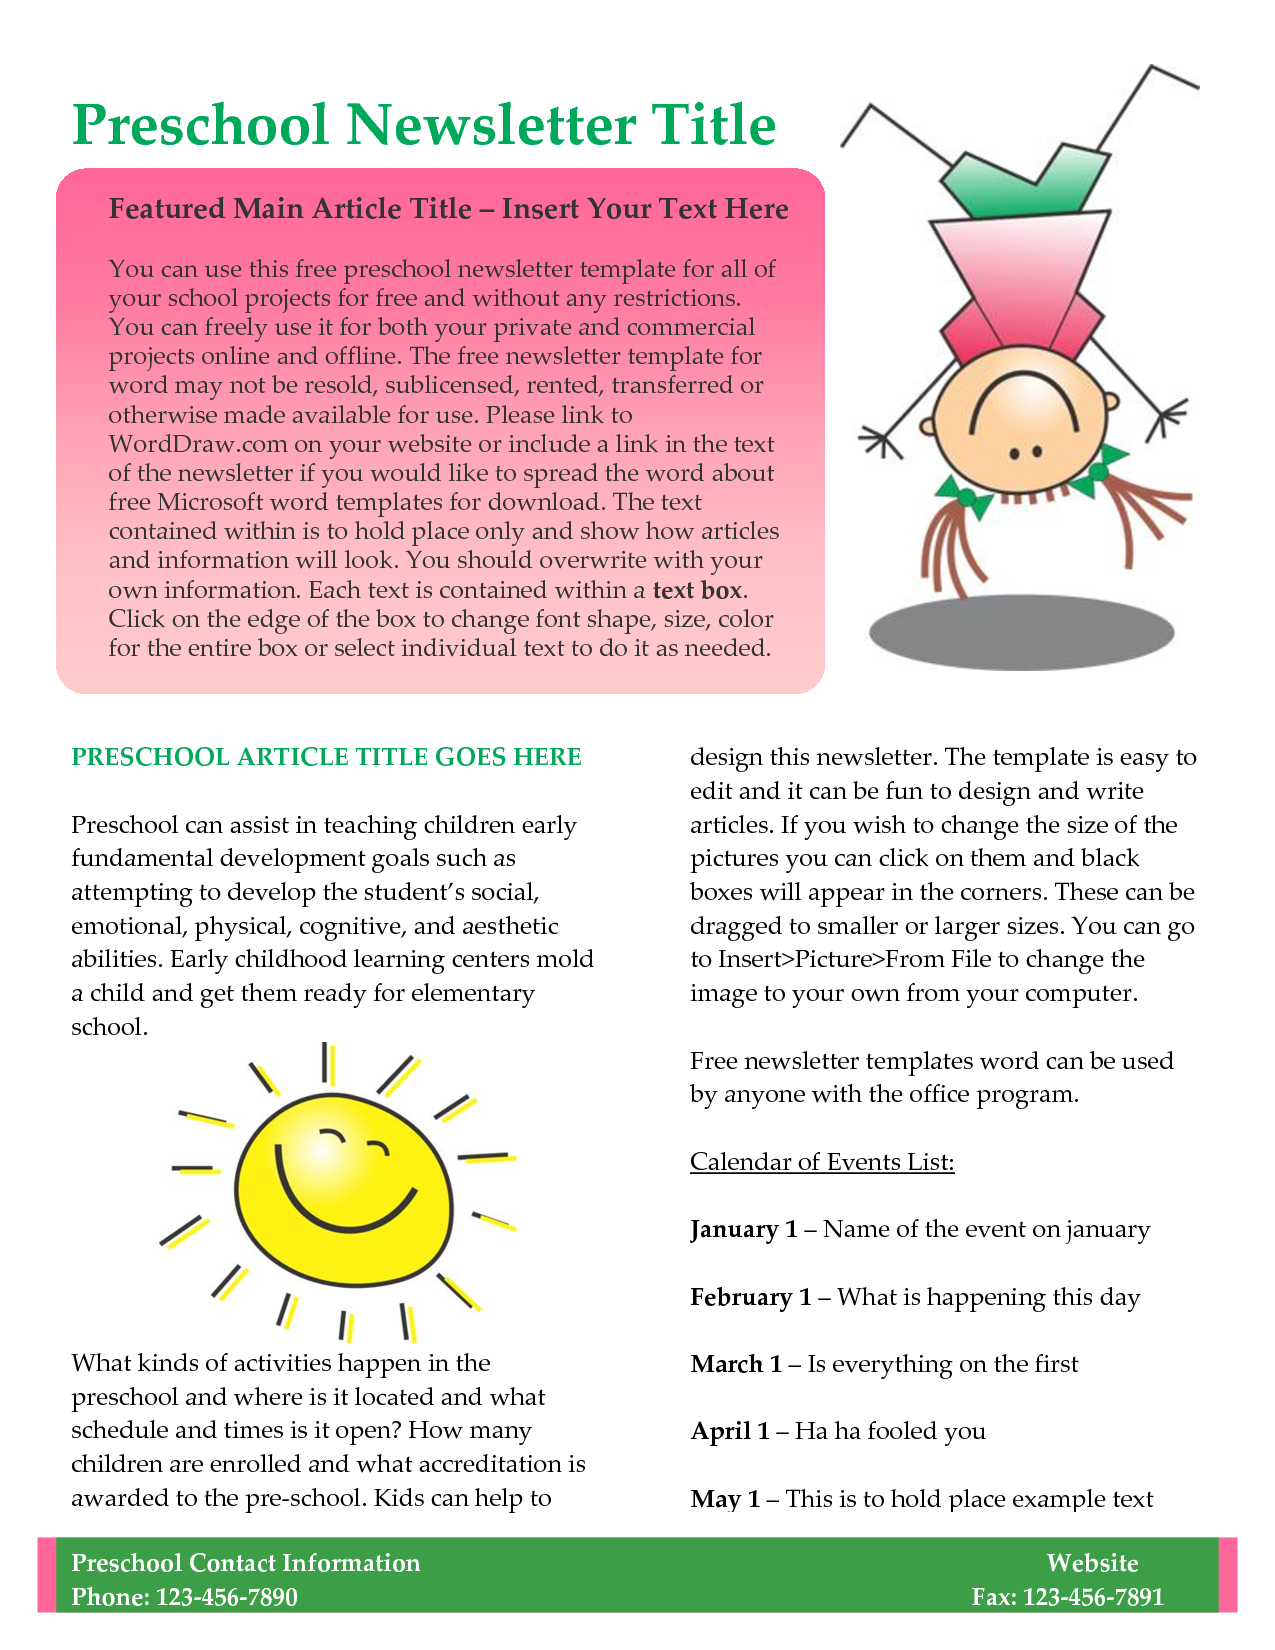 b6260f1d5e540d16a25a5f801e43a485 January Pre Newsletter Templates Free Downloadable on free downloadable schedule templates, free downloadable newsletter layouts, free downloadable portfolio templates, free downloadable quotes, free downloadable forms, free blog templates, free downloadable printables, free downloadable business templates, free downloadable themes, free downloadable menu templates, free downloadable clipart, free downloadable card templates, free downloadable ticket templates, free downloadable software, free newsletter format template, free downloadable newsletter clip art, free downloadable program templates, free downloadable event flyer templates, free downloadable certificate templates,